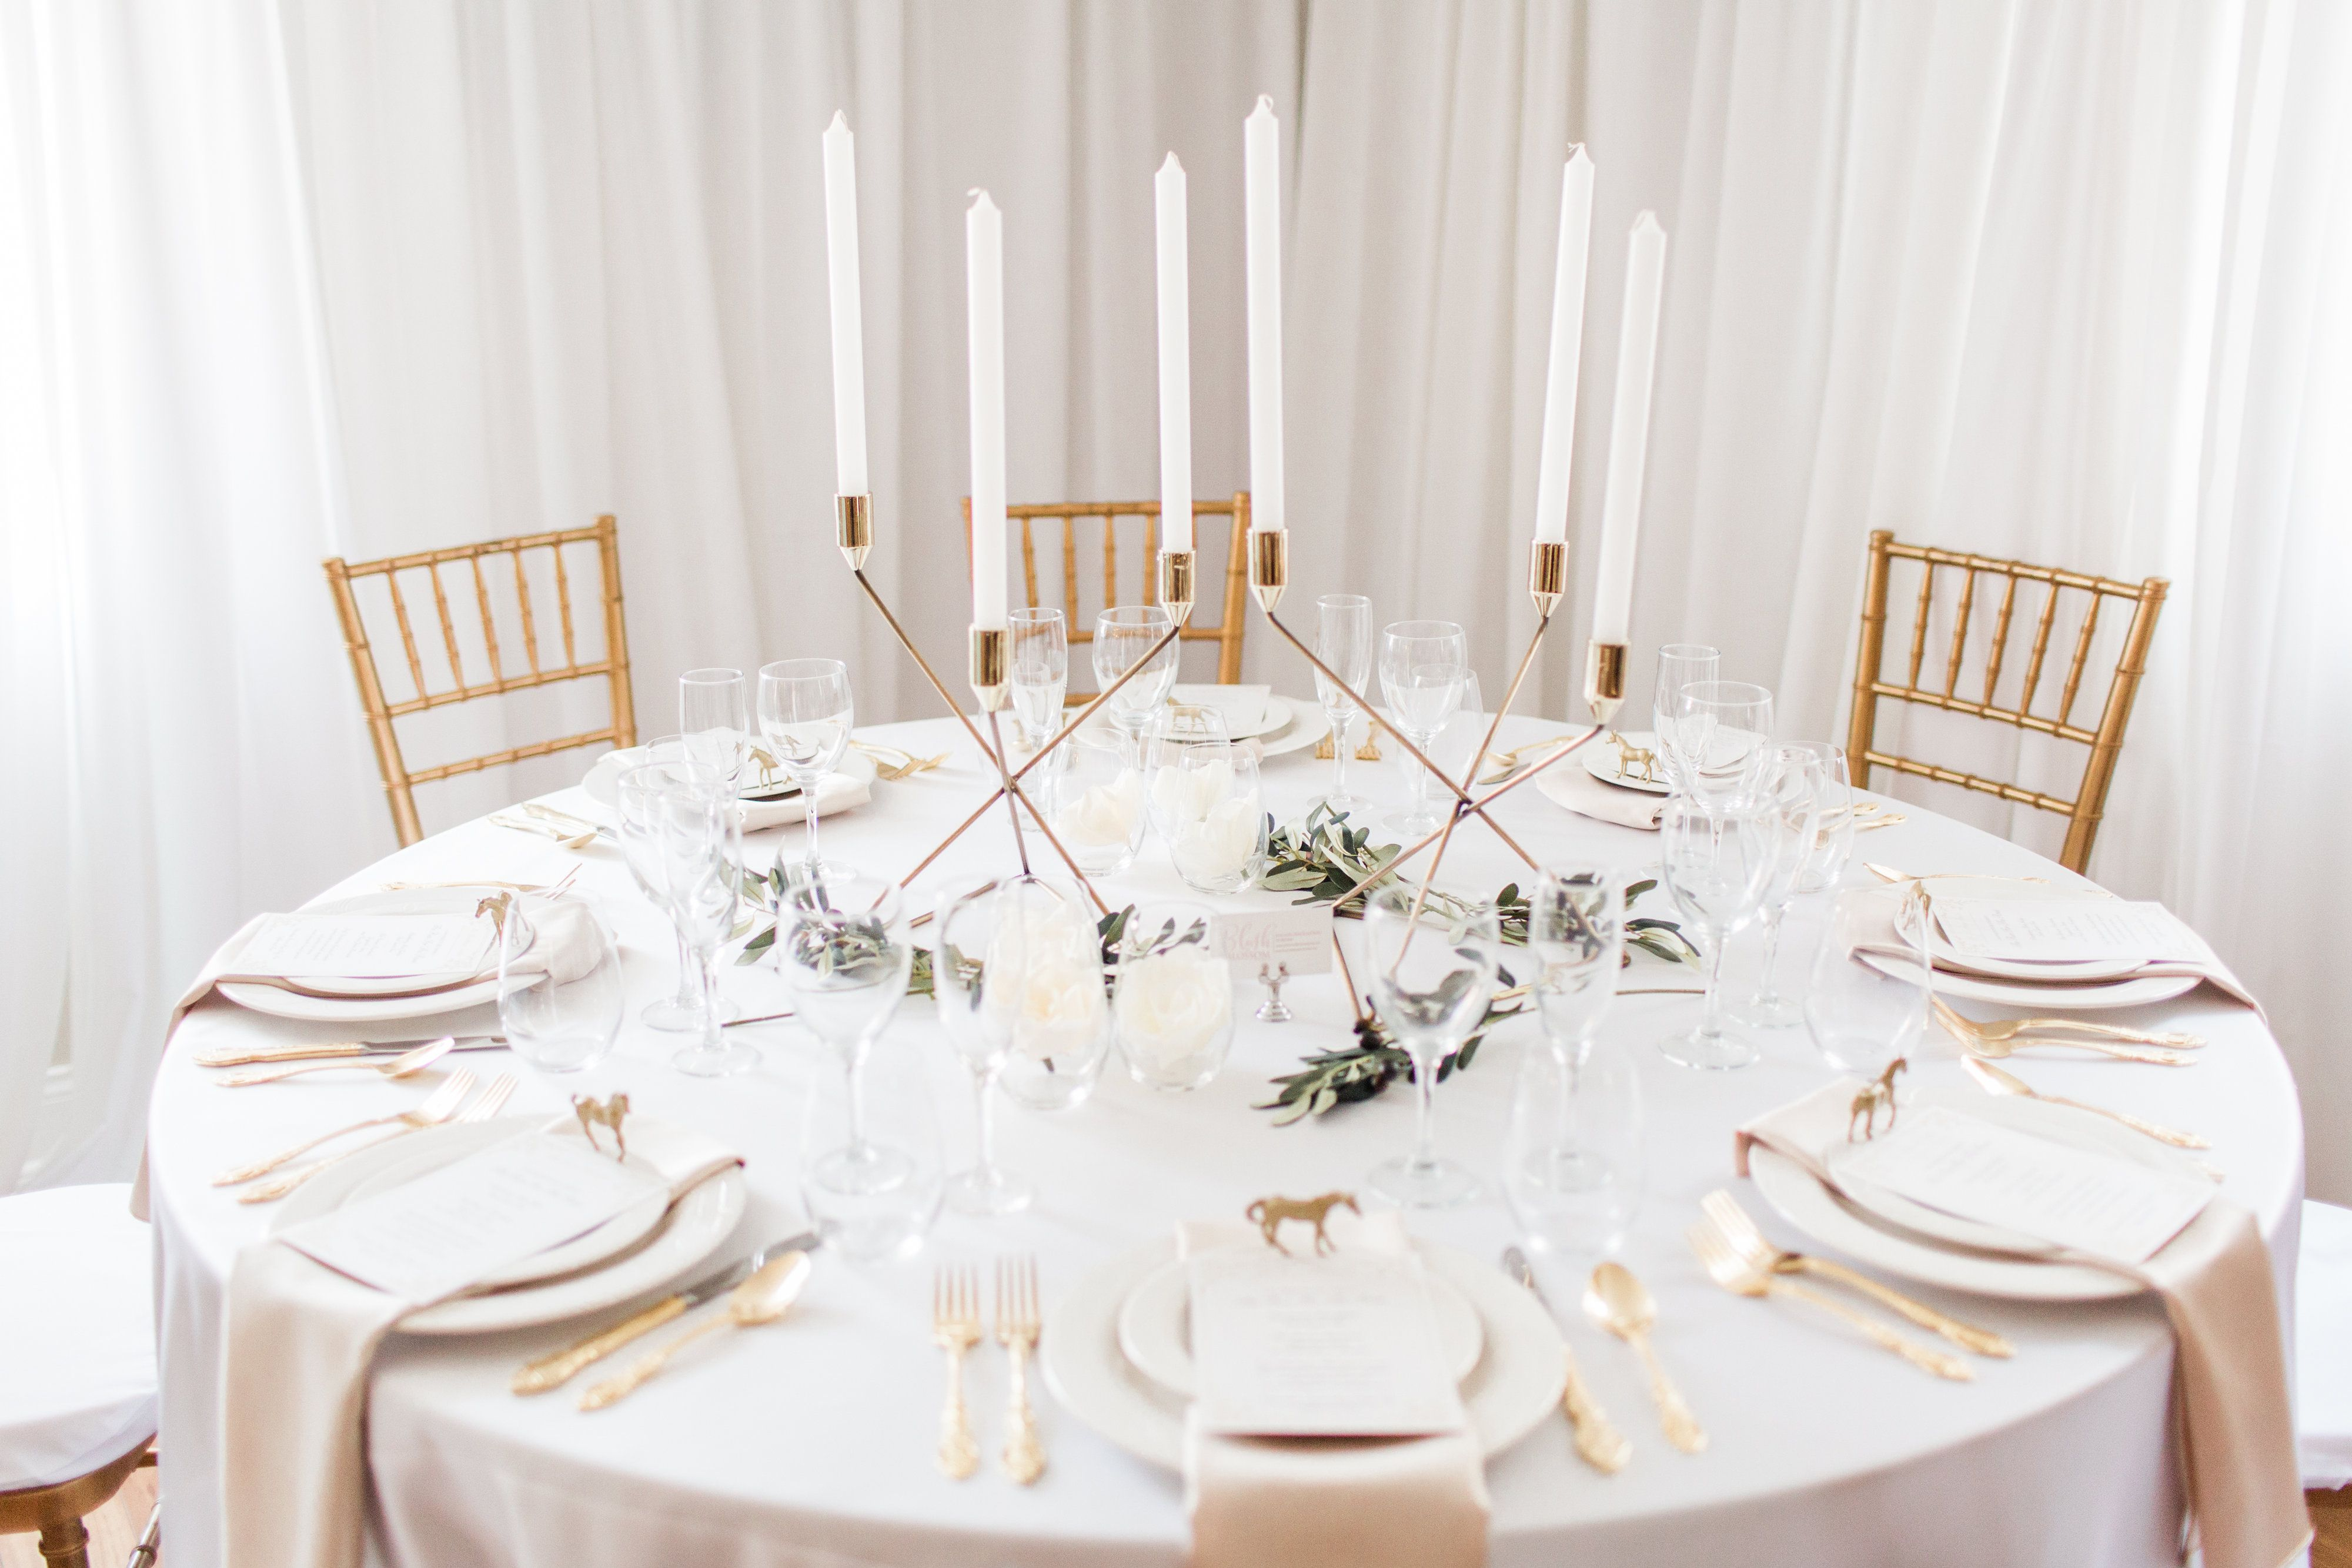 Design by Blush + Blossom Events, Amber Kaitlin (Athena